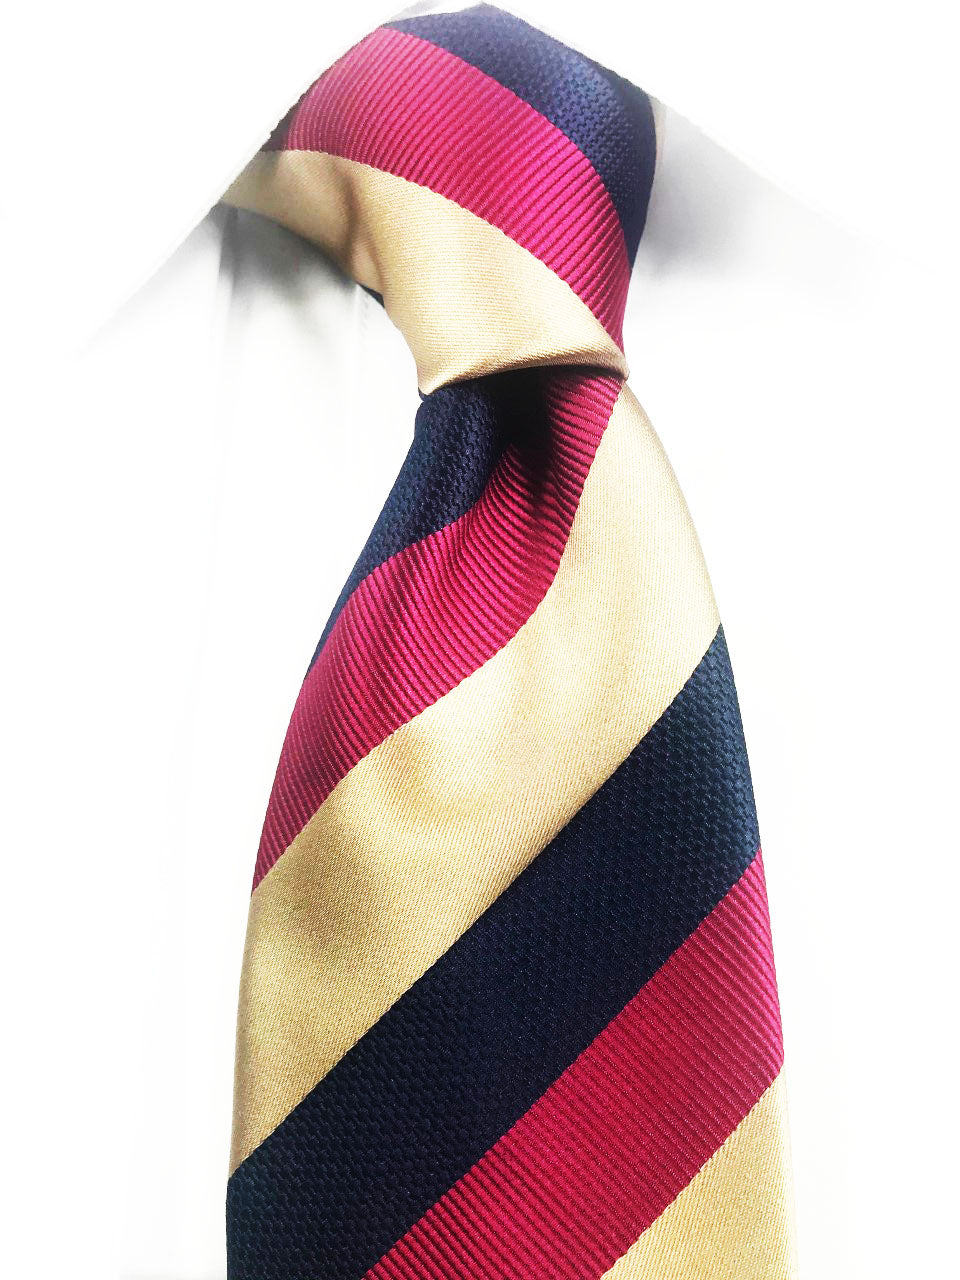 Classic gold, blue, and red striped necktie set